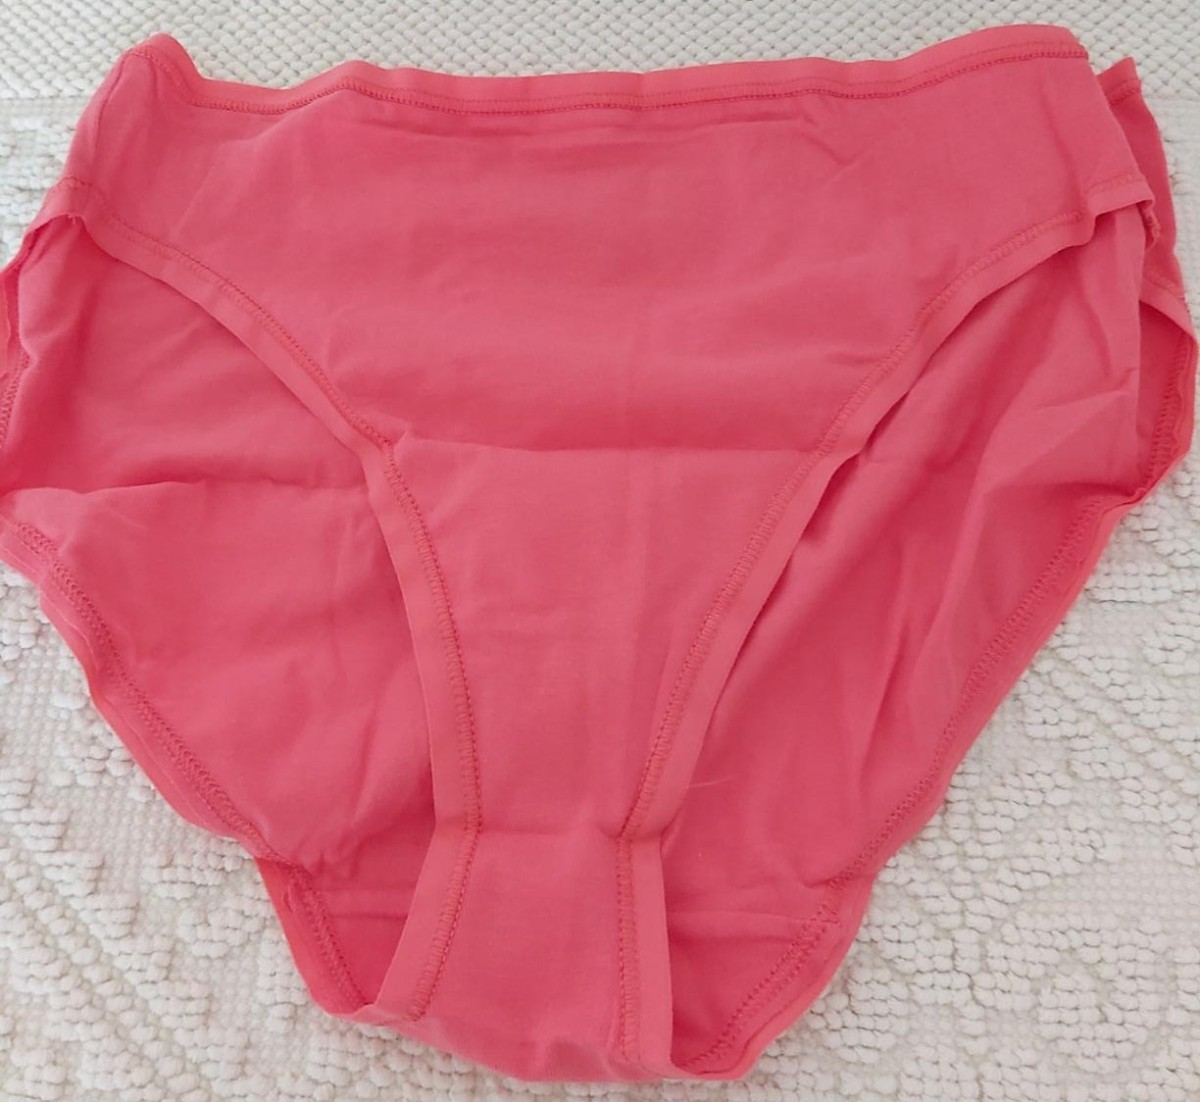 coral colored women's bikini briefs